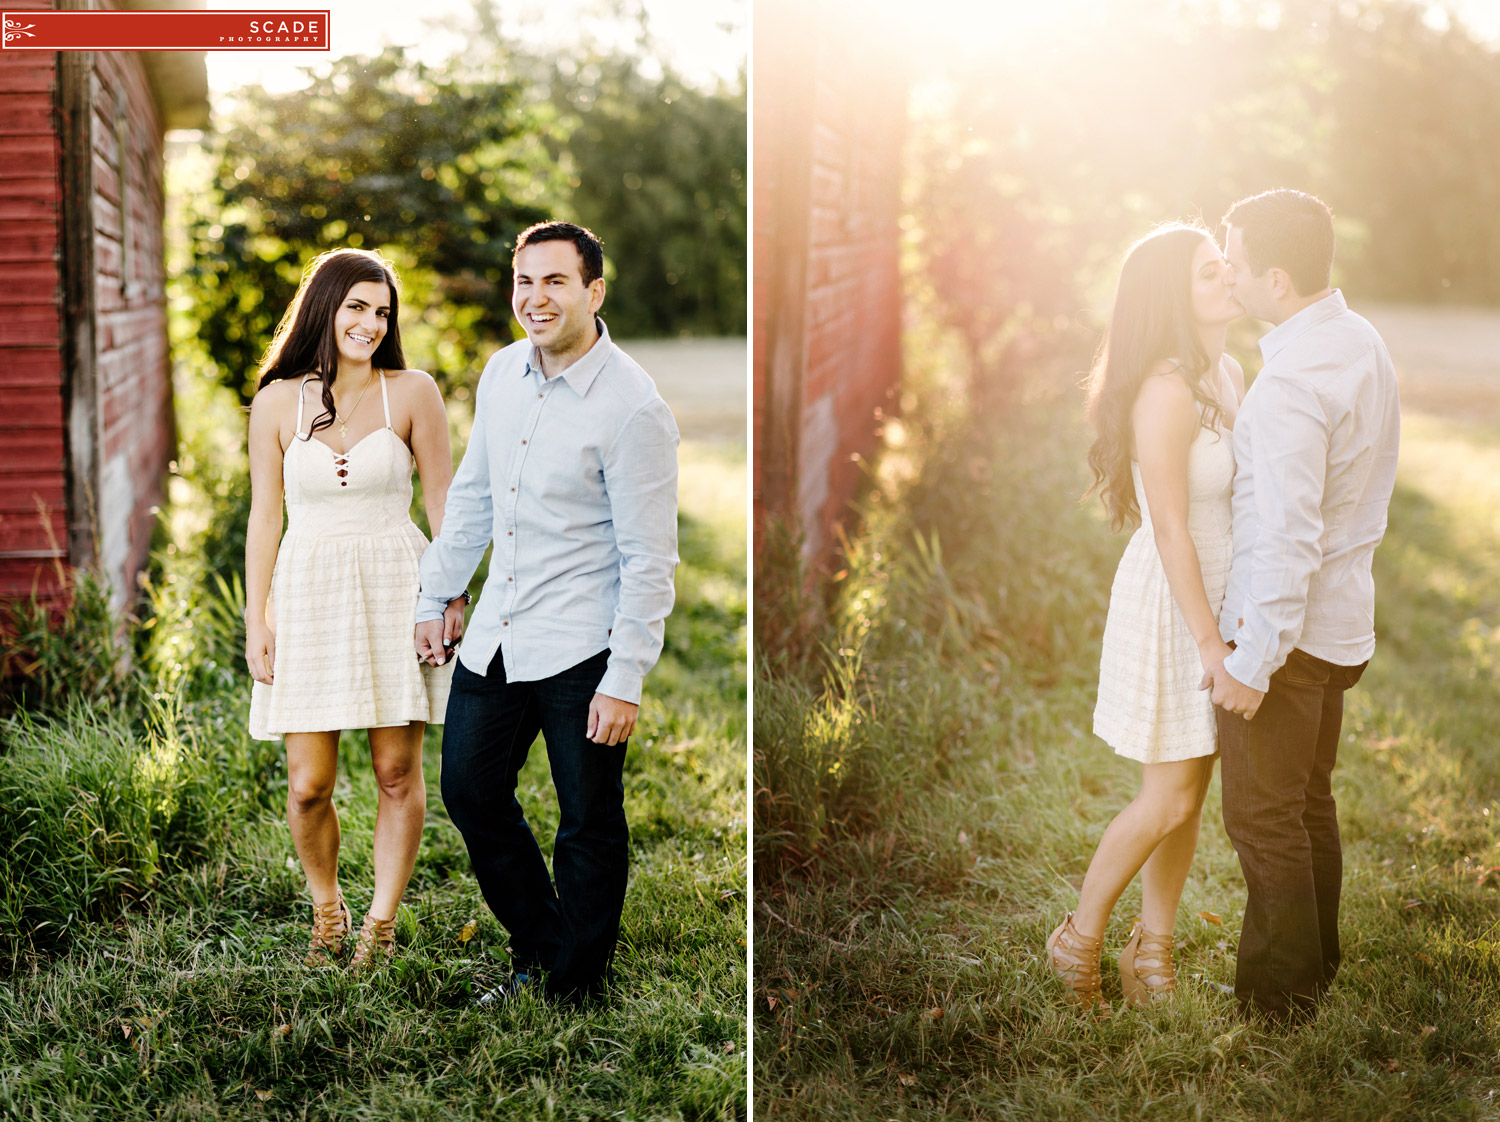 Fall Engagement Session - Laura and Anthony0003.JPG